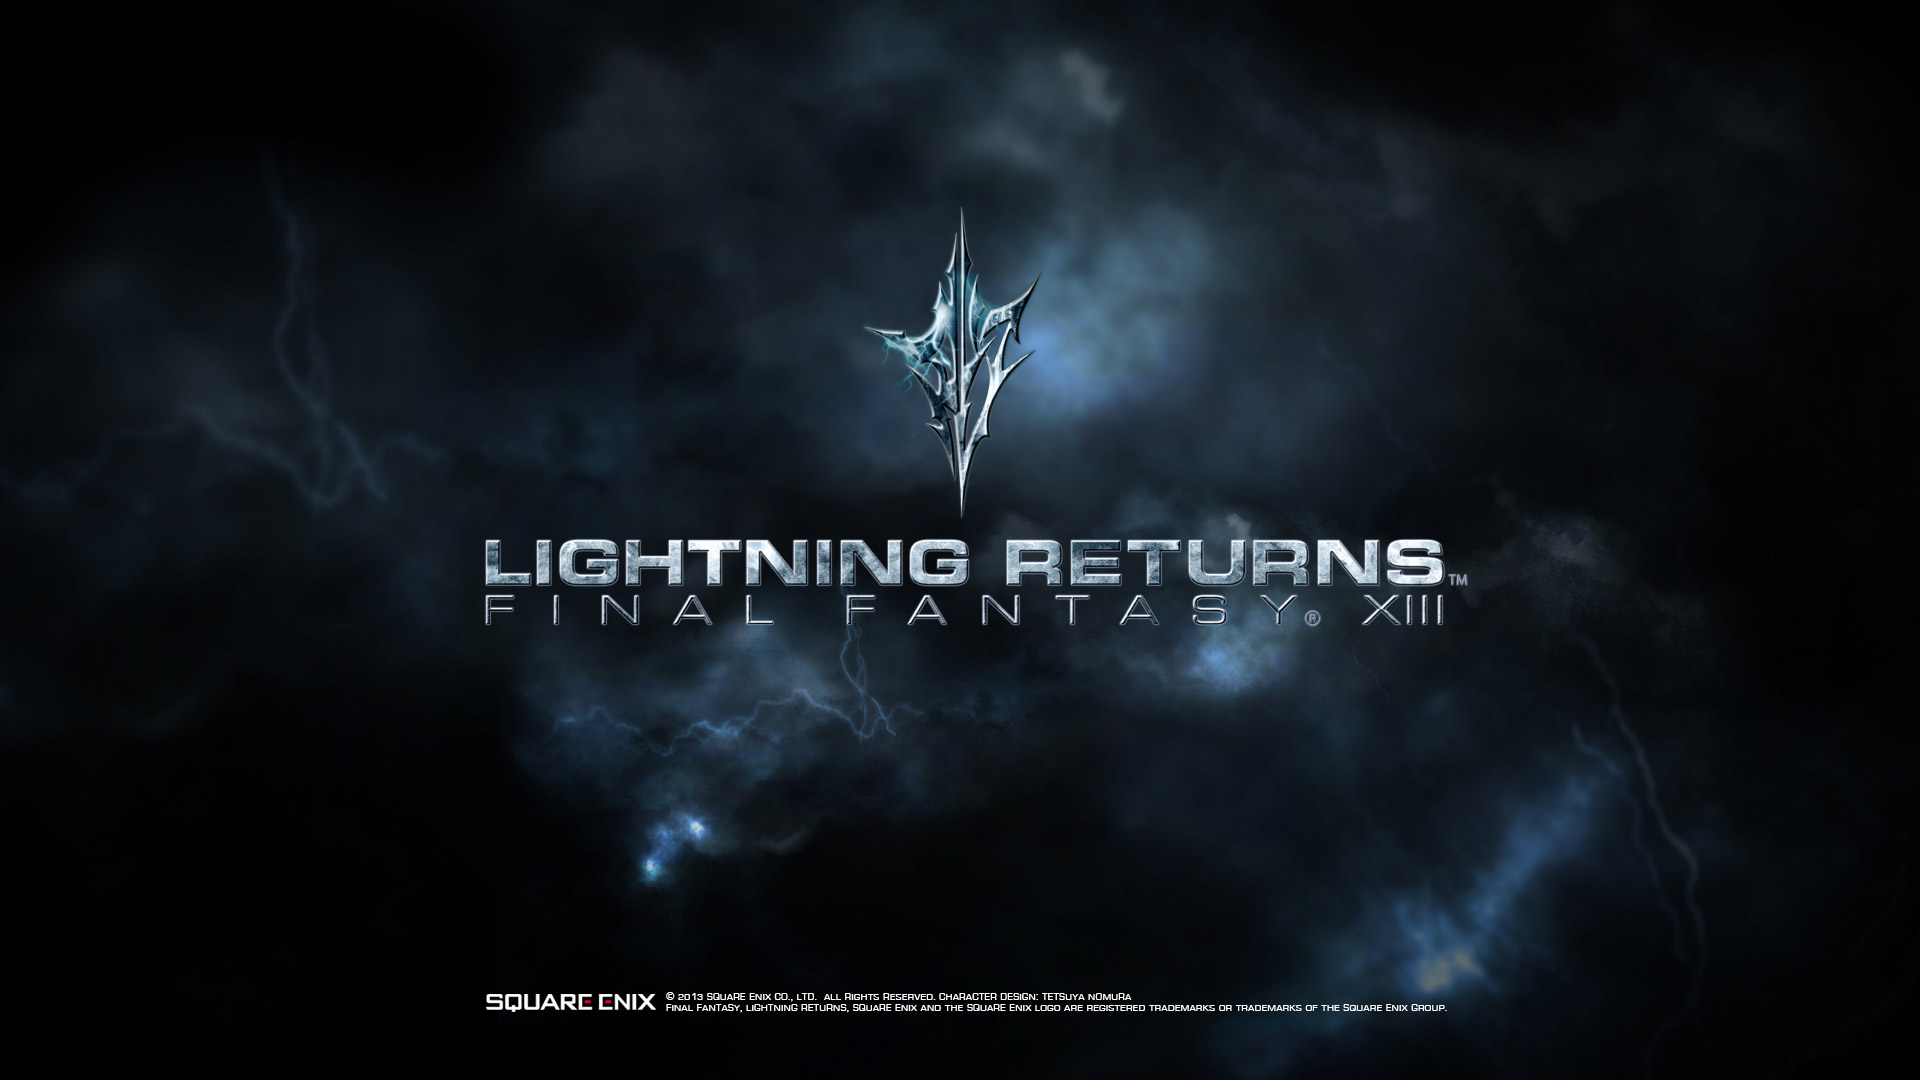 Lightning Returns Final Fantasy XIII wallpaper 1